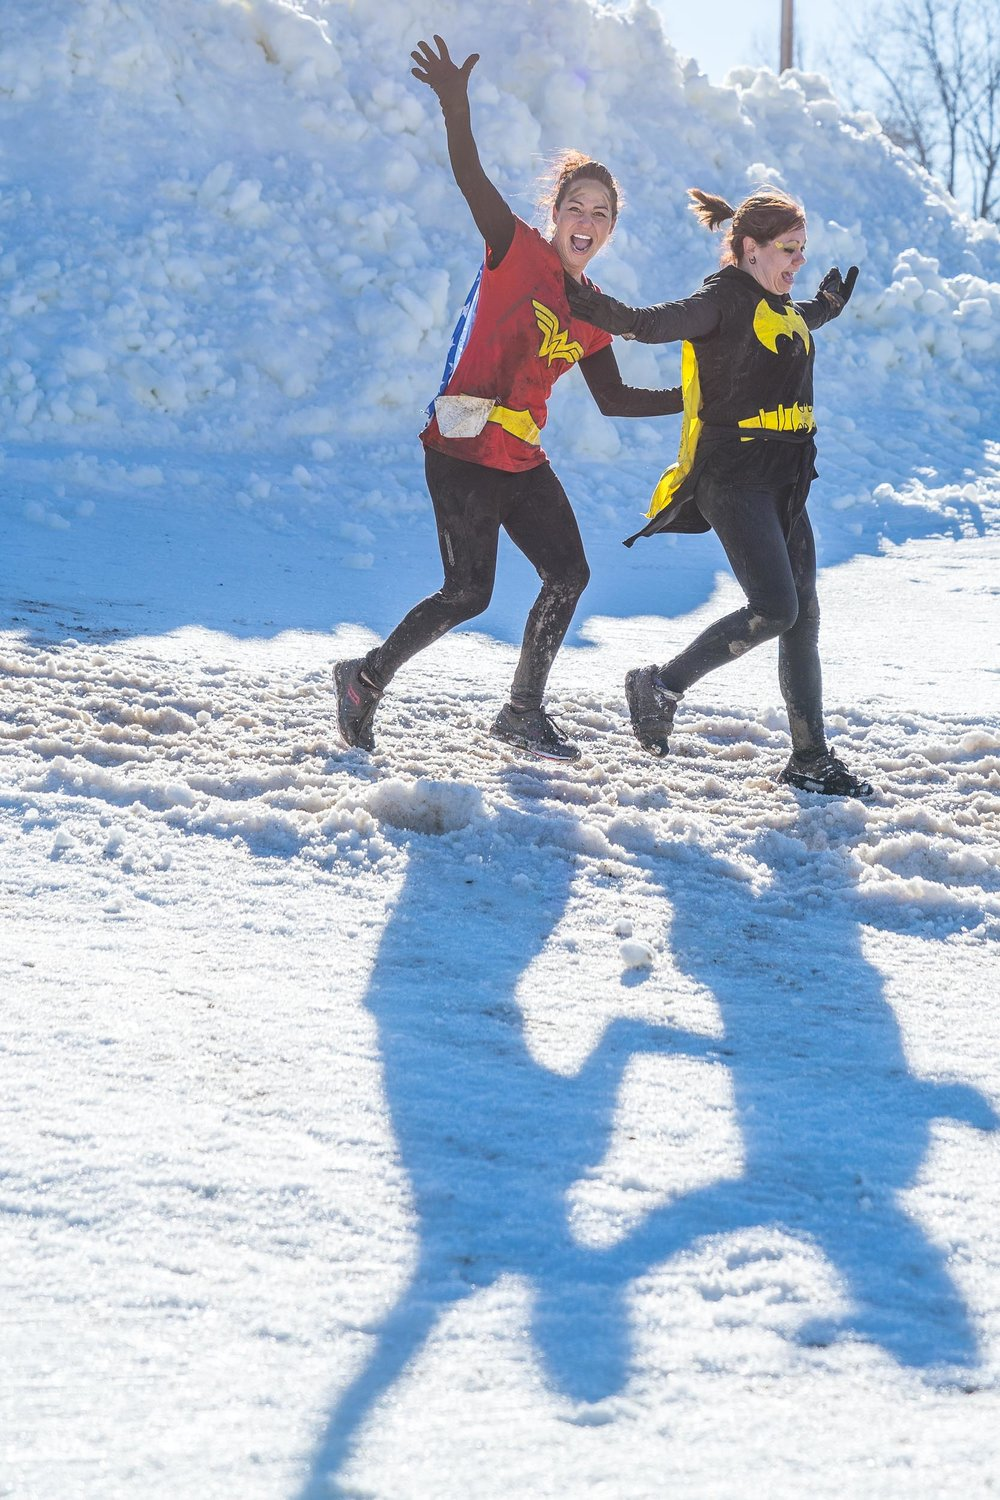 Abominable snow race | Laughter and Joy in the Moment | Photo by BillyBengtson.com